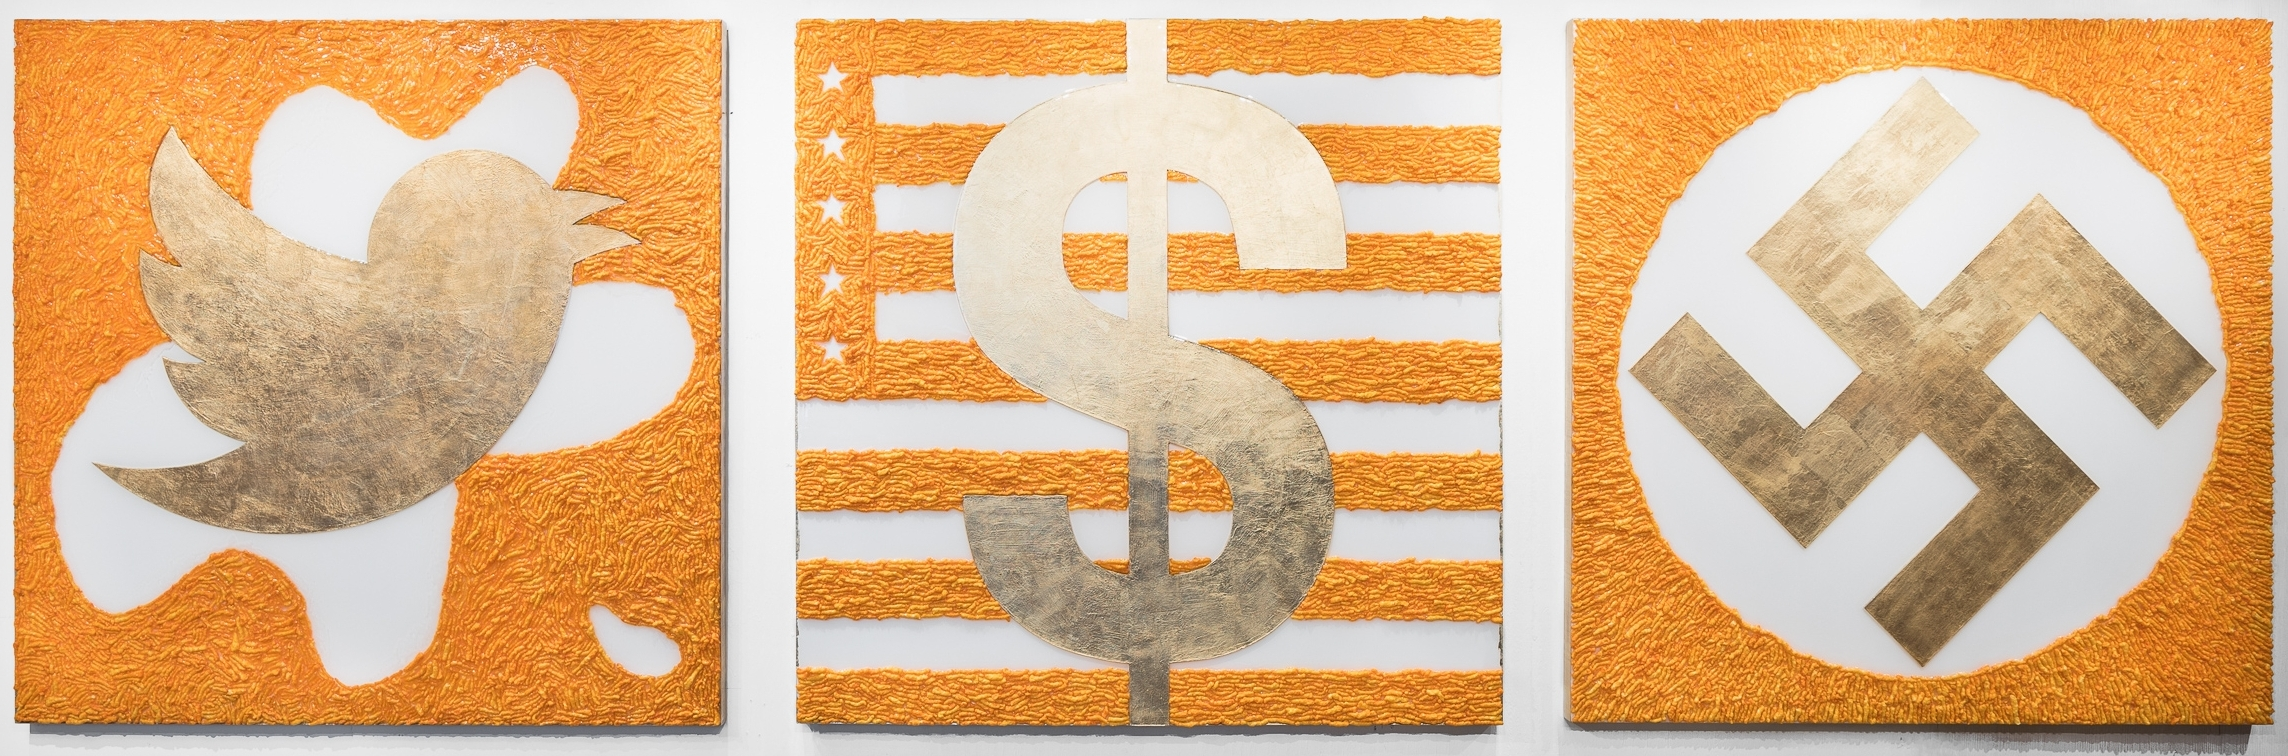 The Best Art Ever! - fake gold, Cheetos, acrylic, resin on boardHow better to treat the subject of a junk food president than by using junk food as the medium of the message? This project acts as a fundraiser for organizations resisting the Toxic Orange Agenda.